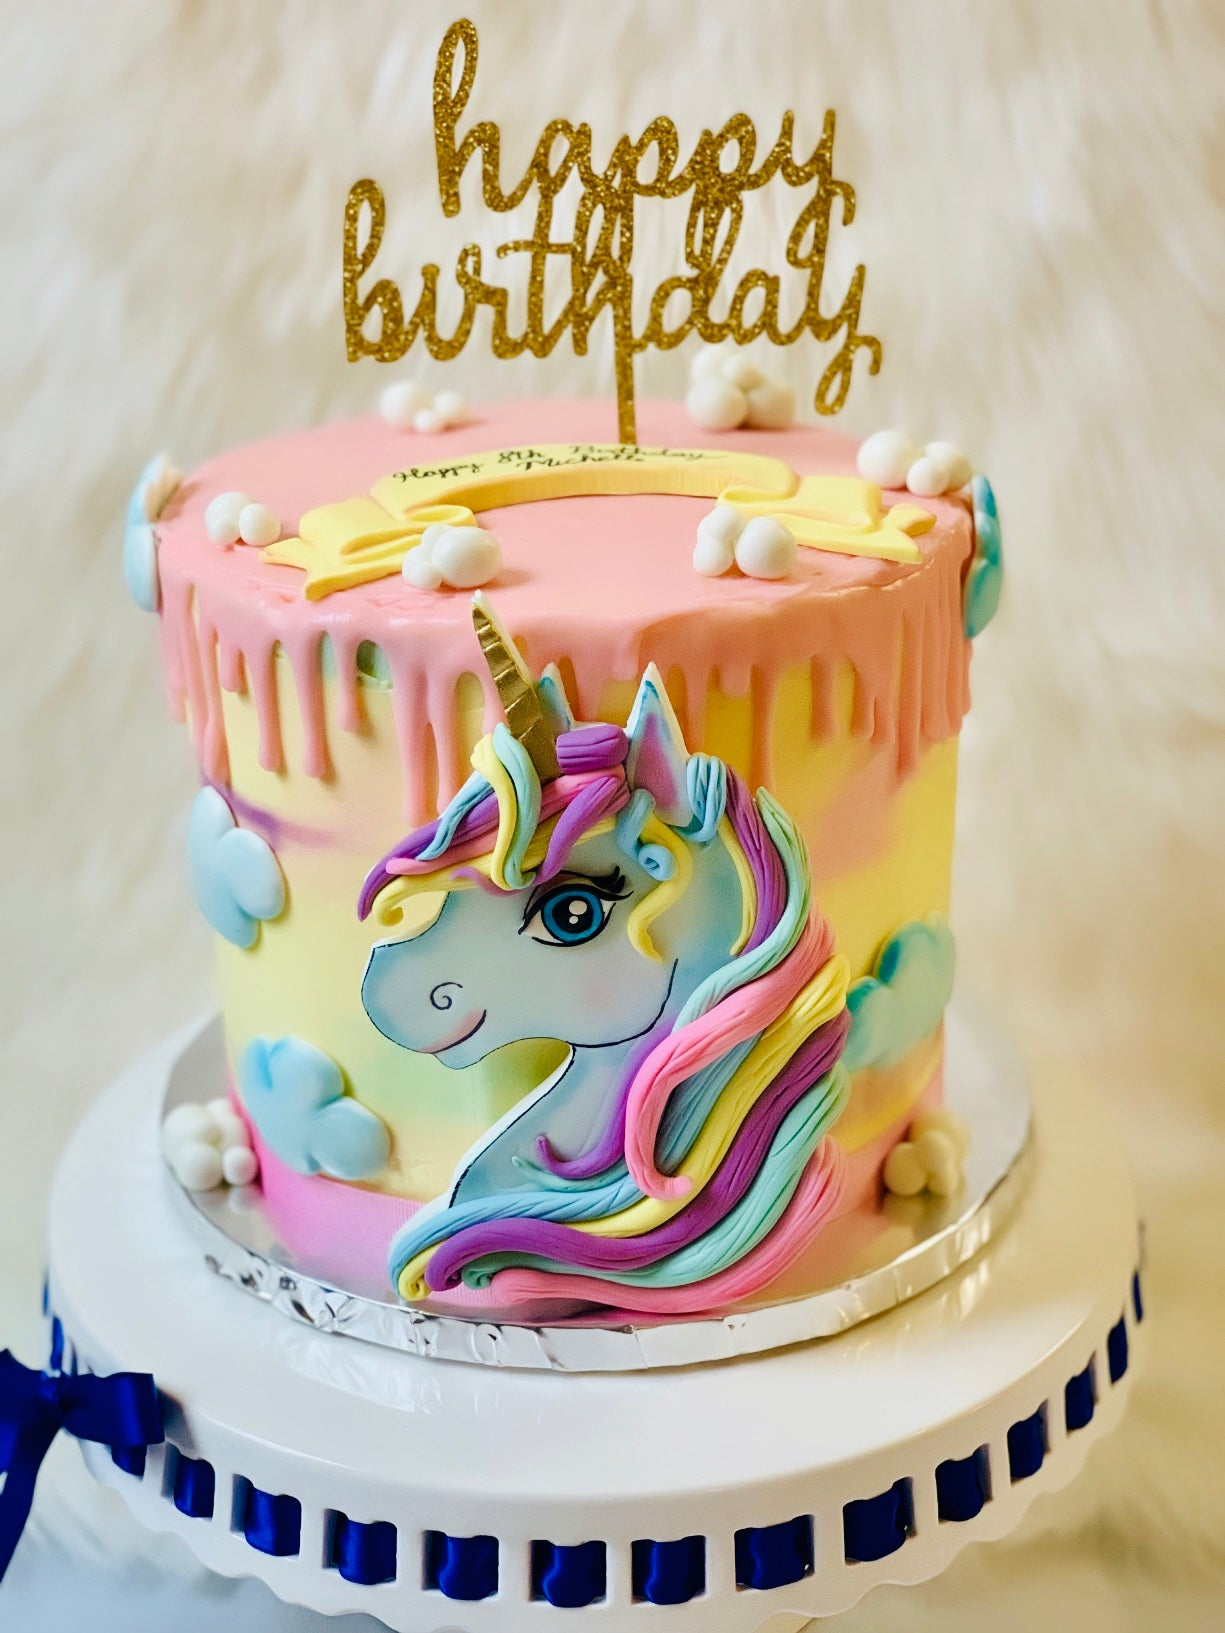 Fantastic Fondant Unicorn Birthday Cake Topper And Set Of 8 Fondant Clouds Birthday Cards Printable Riciscafe Filternl